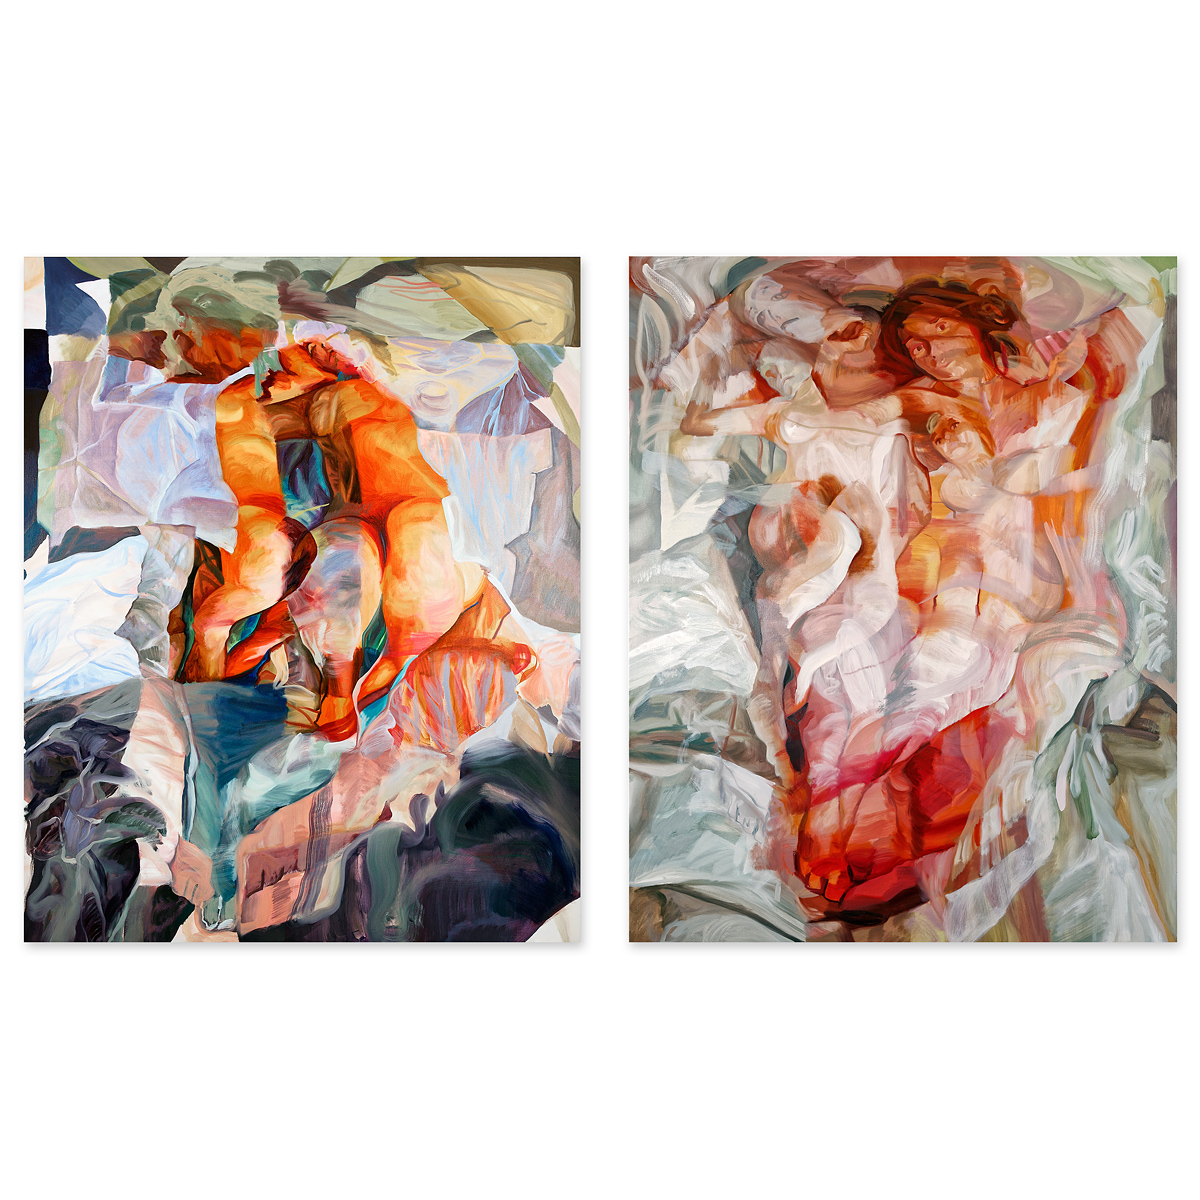 Barycenter I (left) and Barycenter II (right). Each 120 x 150 cm. Oil on Canvas